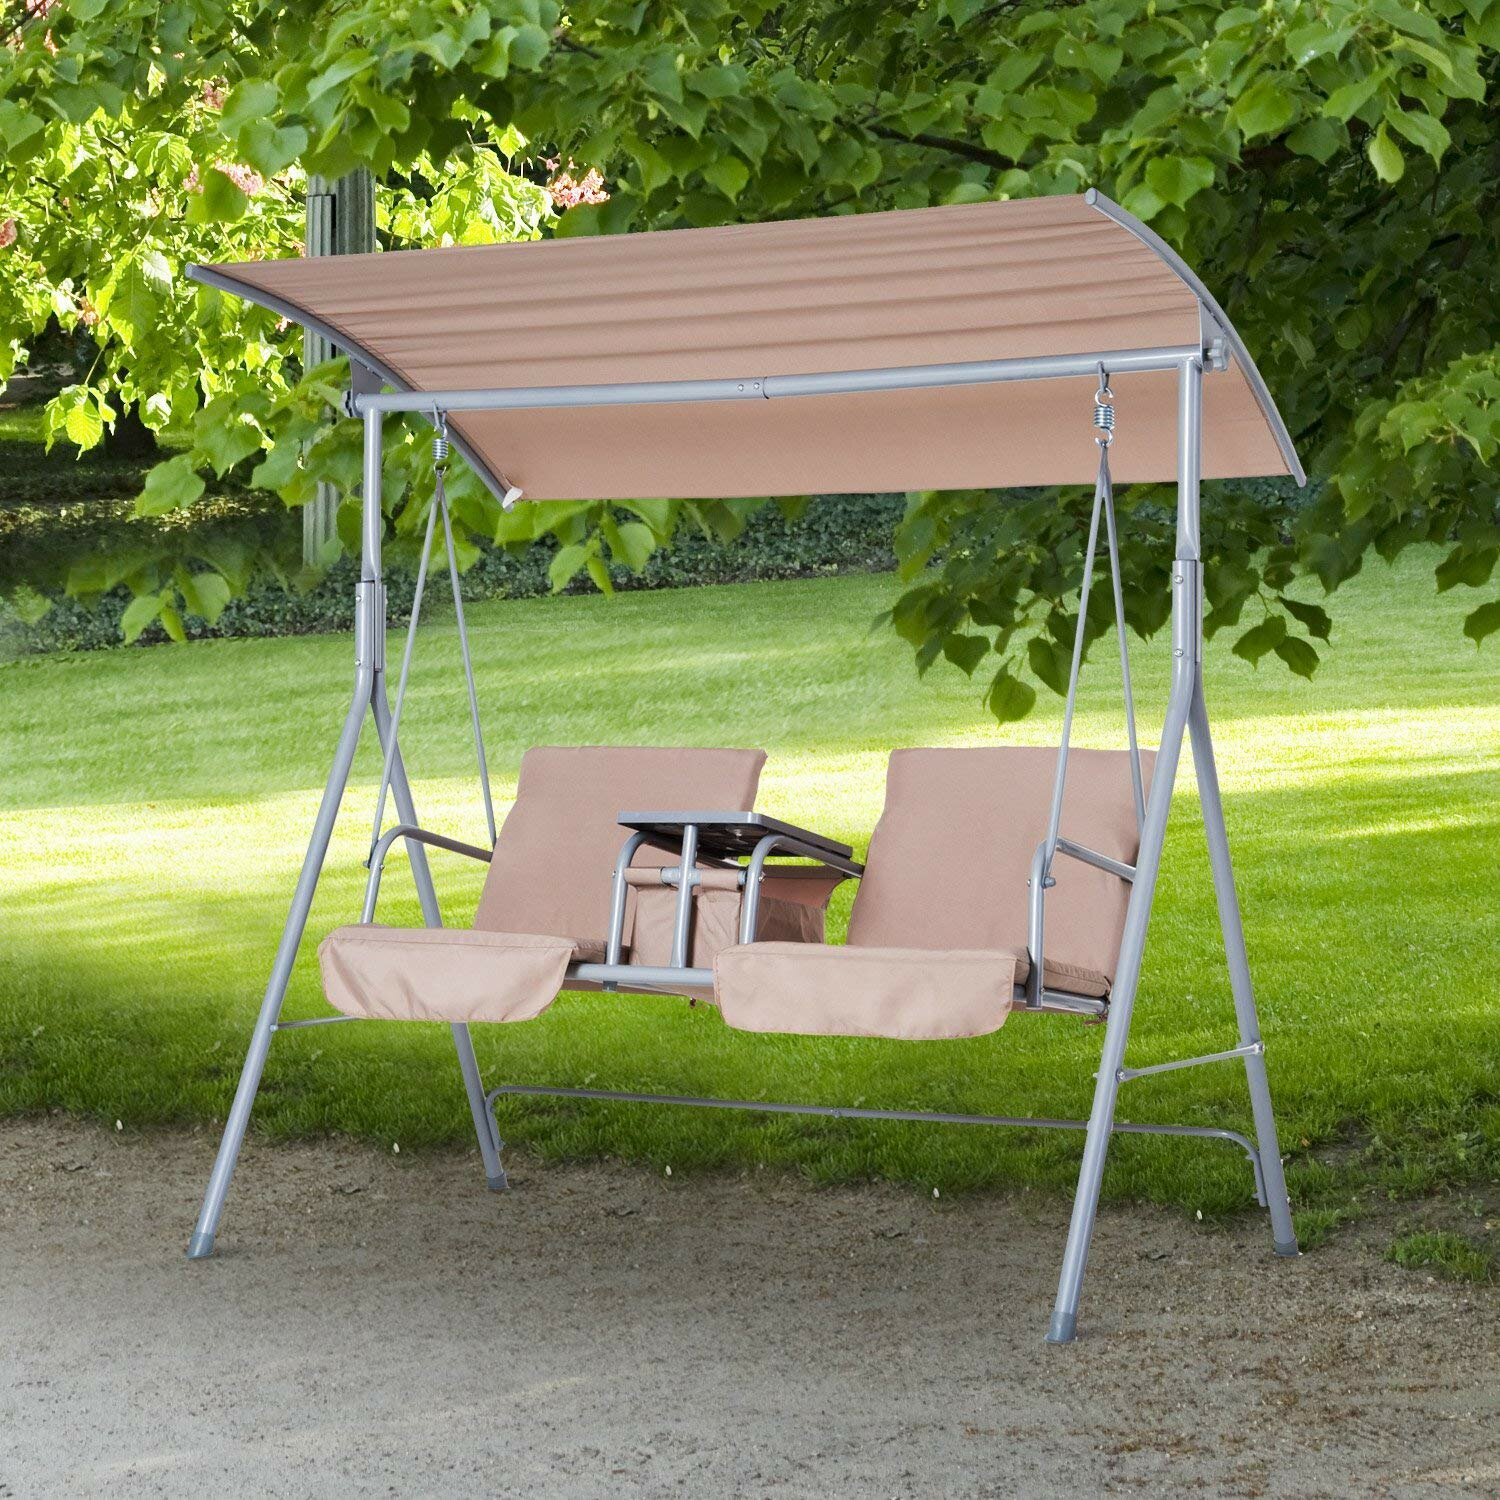 Laron Covered Patio Porch Swing With Stand Within Patio Porch Swings With Stand (View 13 of 25)